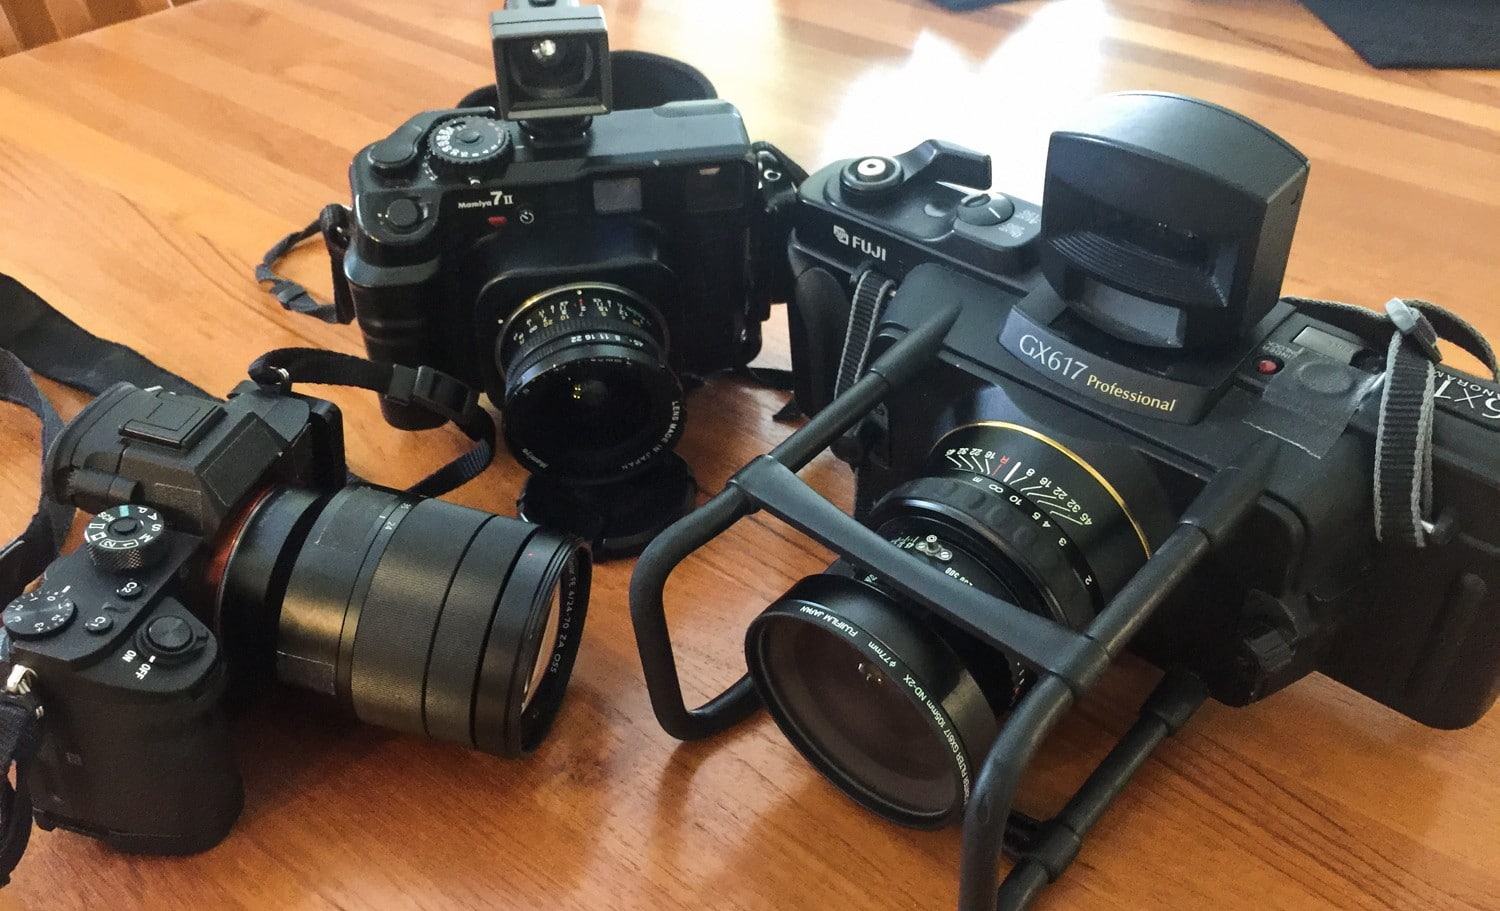 The Sony A7Rii with 24-70,, Mamiya 7ii with 43mm, and Fuji GX617 with 105mm attached.